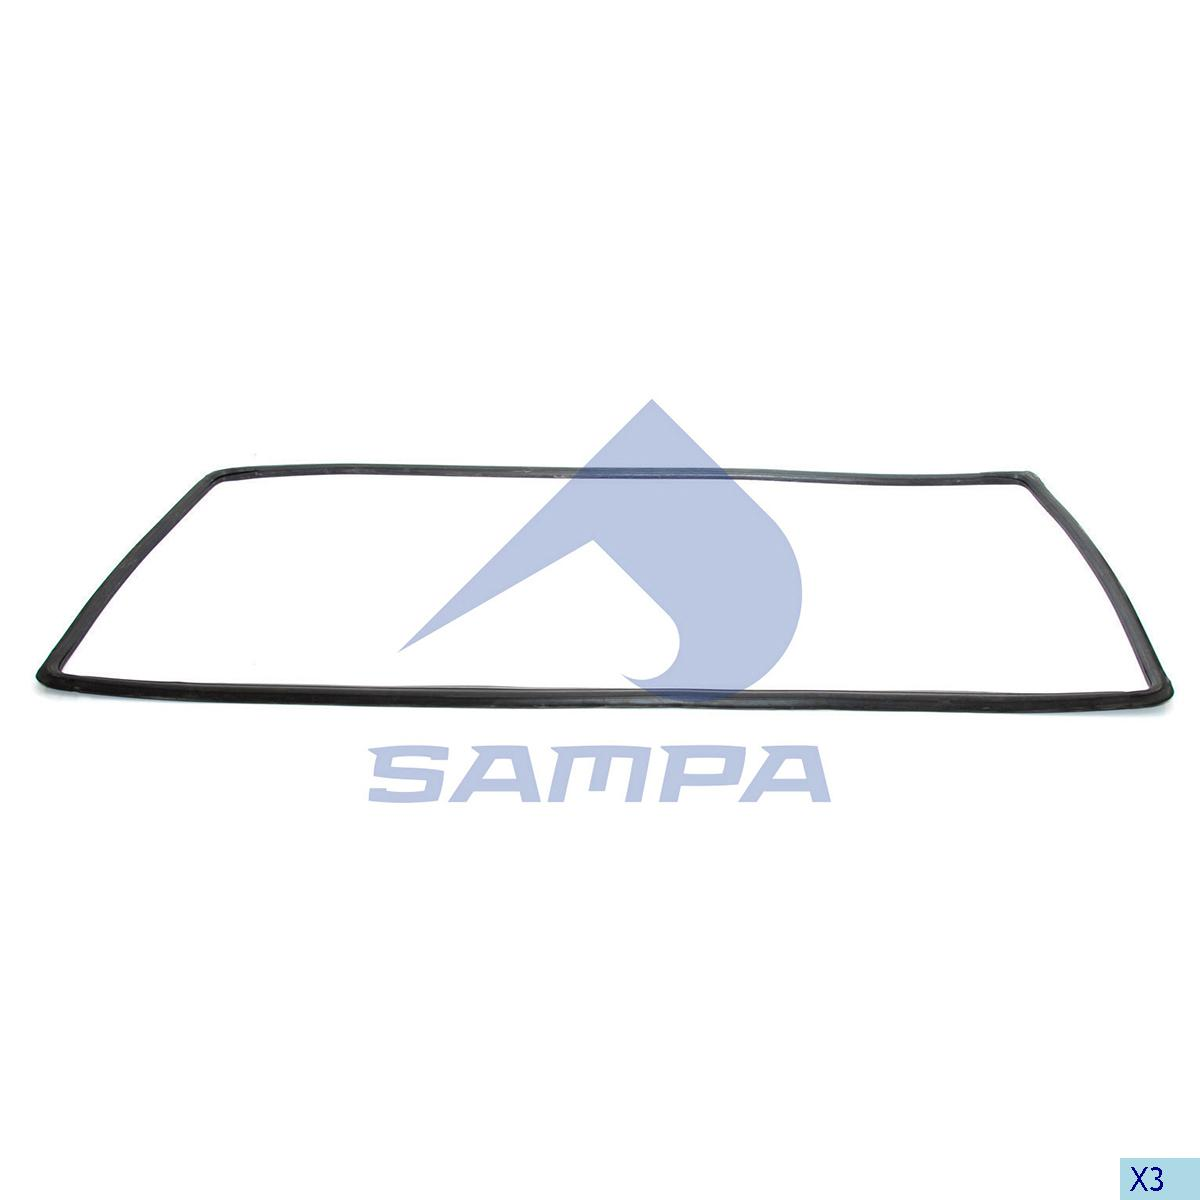 Strip, Windscreen, Scania, Cab